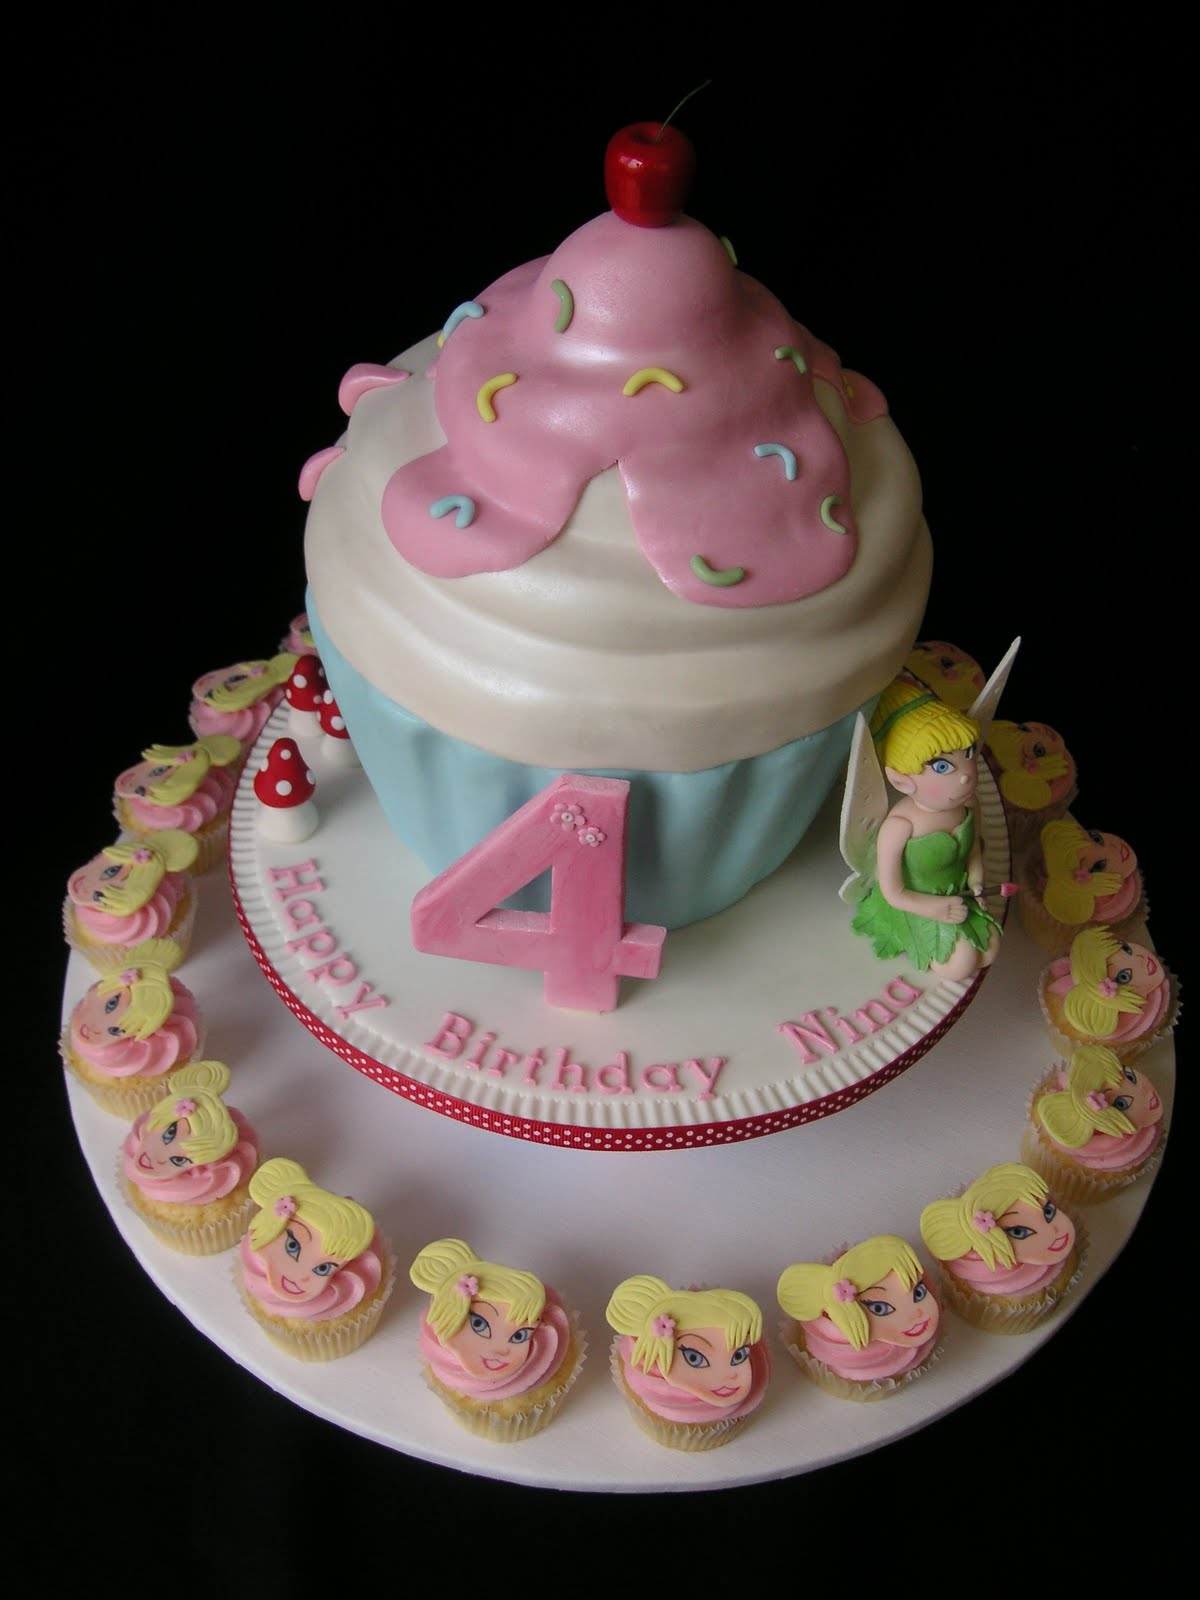 Cake Designs Using Cupcakes : Birthday Cakes Idea: Cupcake Birthday Cakes Idea